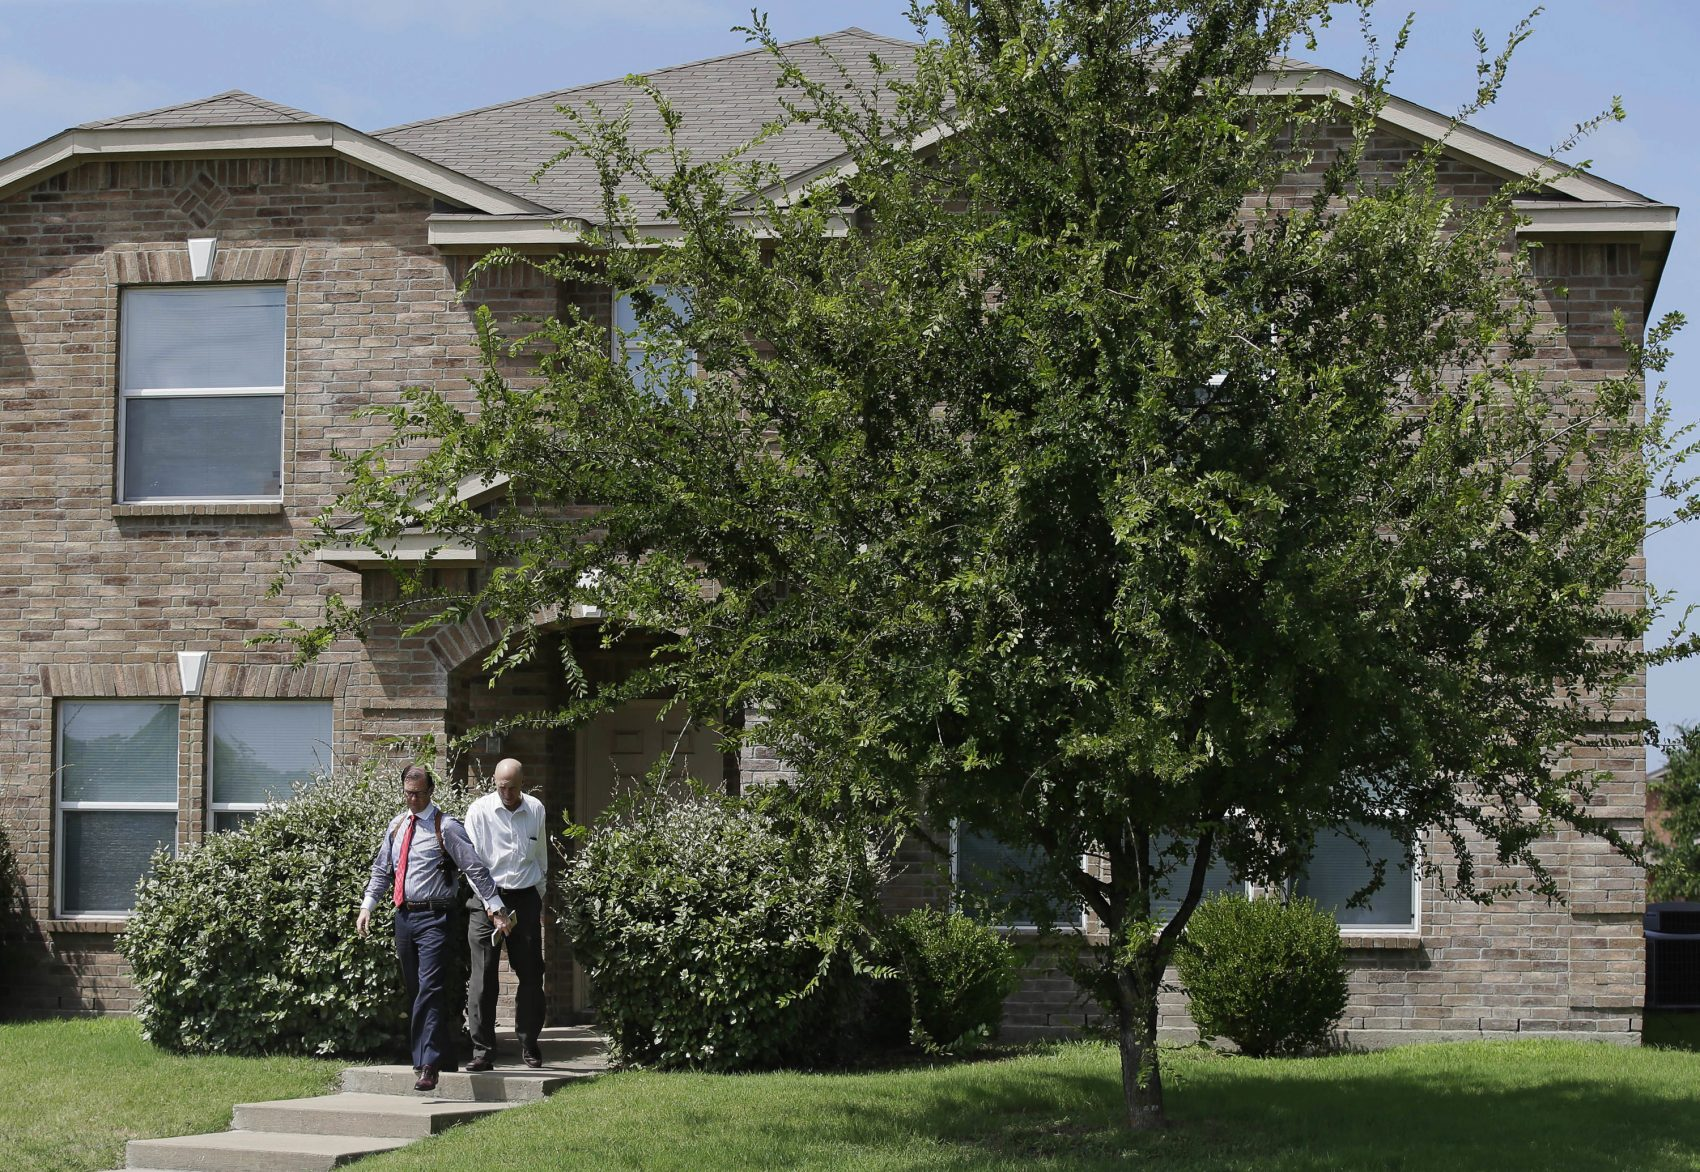 Investigators leave the home of Micah Xavier Johnson in the Dallas suburb of Mesquite, Texas, Friday, July 8, 2016. (LM Otero/AP)